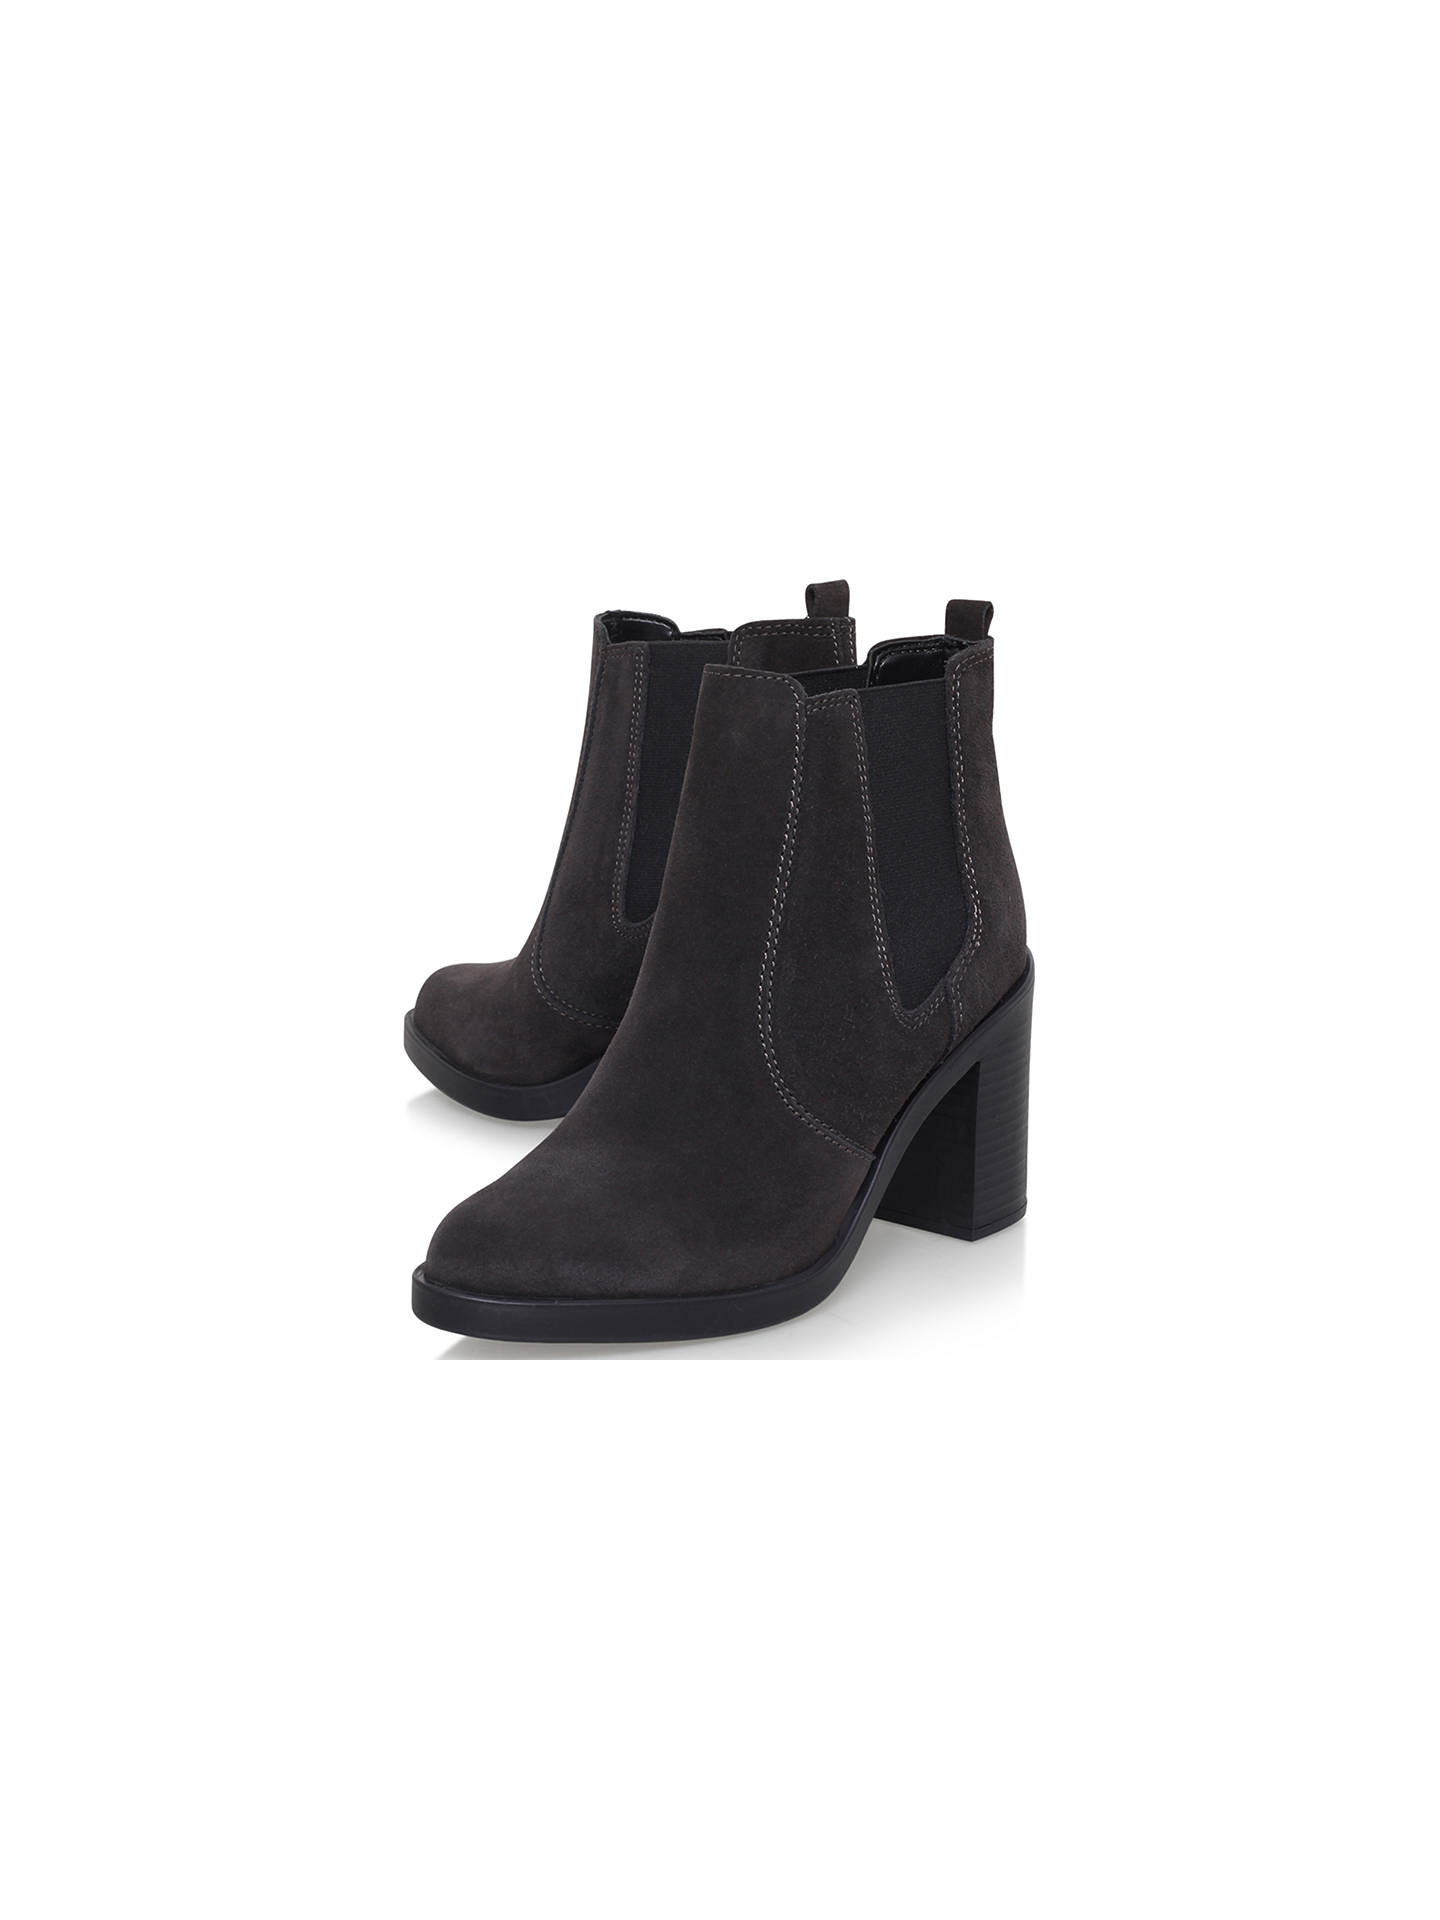 Buy KG Kurt Geiger Sicily Block Heeled Ankle Boots, Grey, 4 Online at johnlewis.com